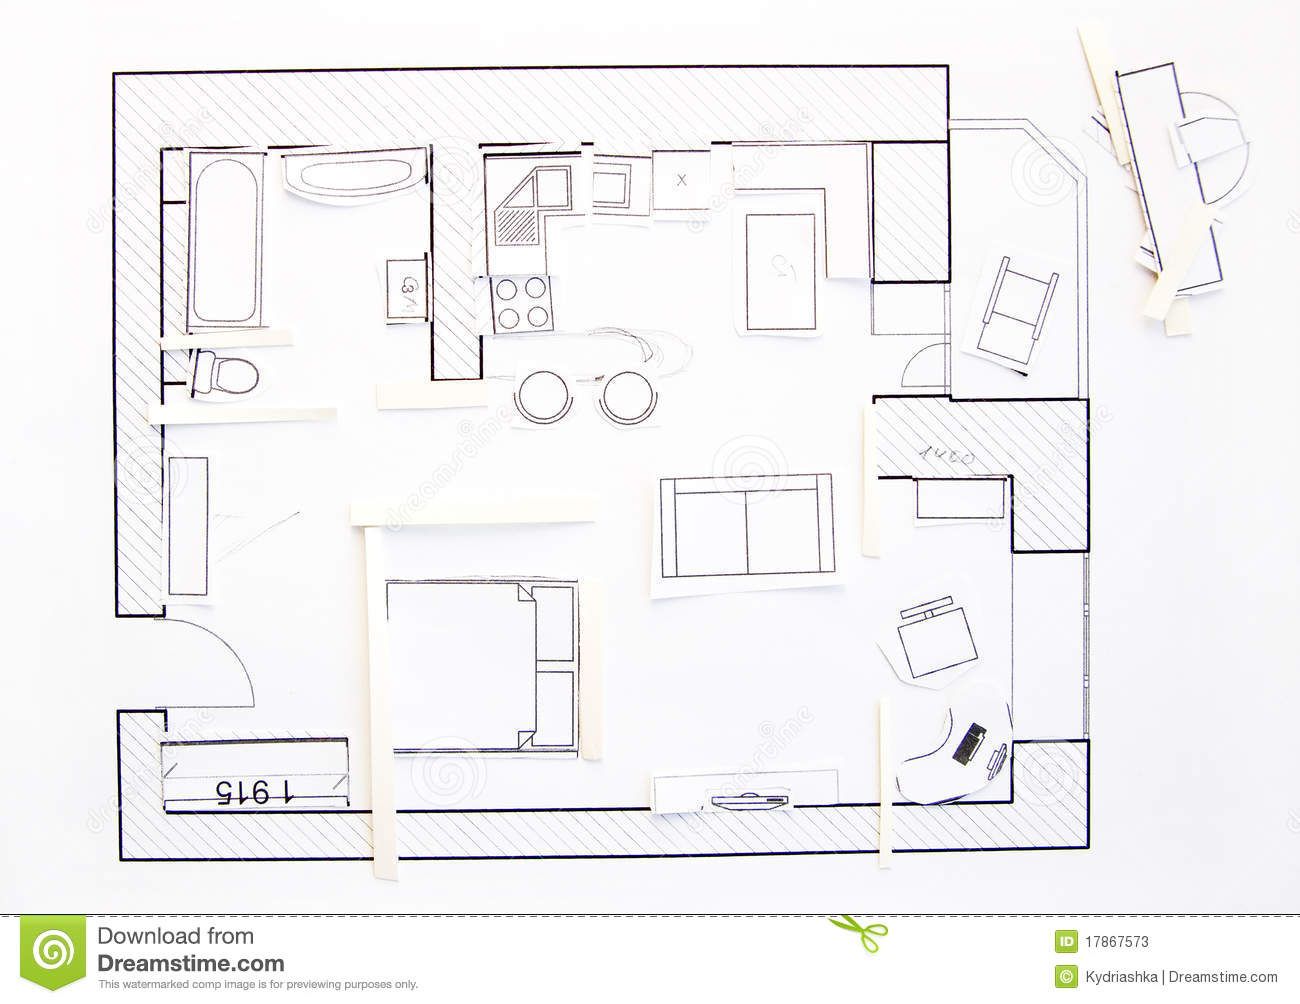 Amenager Studio Idees Deco besides 2011 05 01 archive besides Most Modern Houses With Pool as well Archicad Tutorial Remodels Additions Archicad additionally Fotografie Stock Appartamenti Di Disegno Interno Vista Superiore Image17867573. on simple small house plans